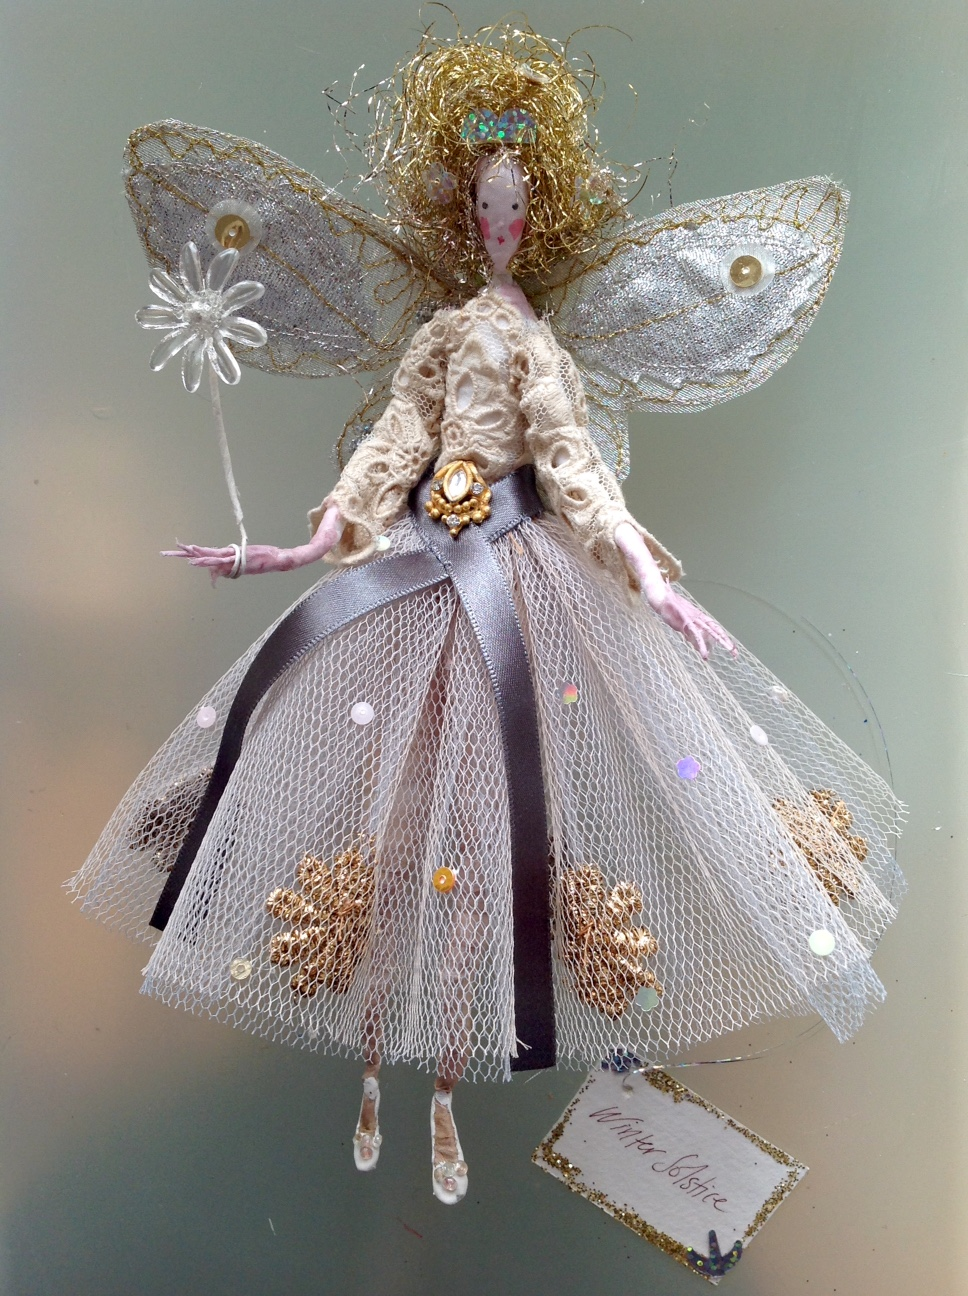 WINTER SOLSTICE A 20 cm high fairy with a painted silk face . She is wearing a vintage lace top and a stiff net skirt embellished with brocade and sequins with an Indian inspired jewel at her waist. Her wings are embroidered and she comes in an organza bag with dried flowers in it. £48 plus £3.50 p&p